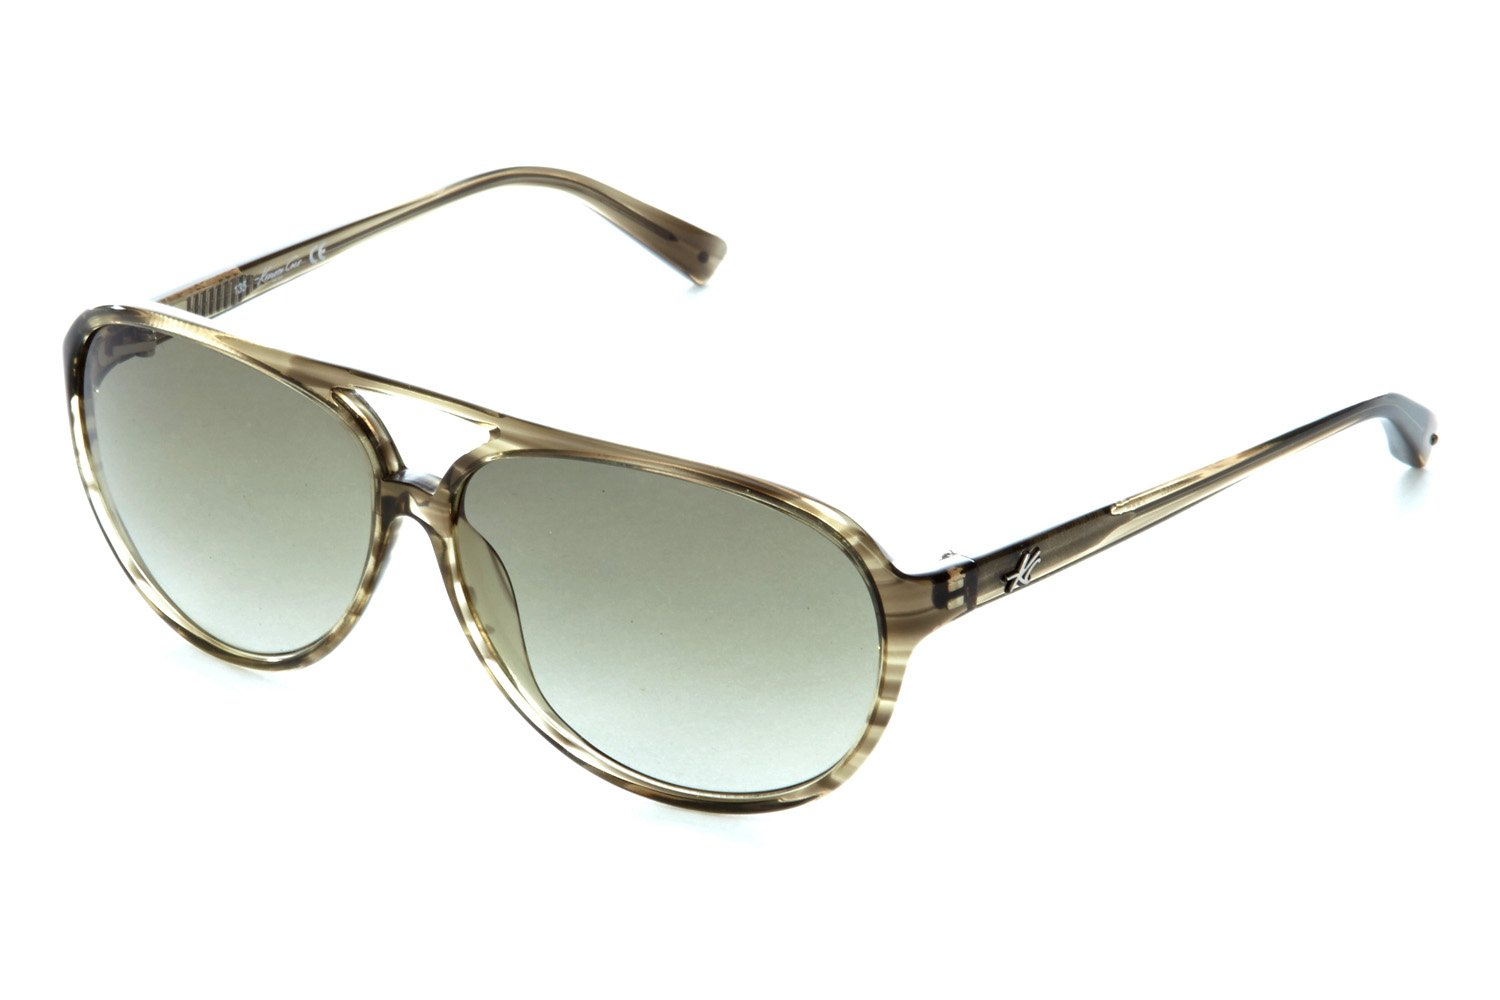 Kenneth Cole Recreation Sunglasses Style: KC7012-98F Size: OS by Kenneth Cole Recreation